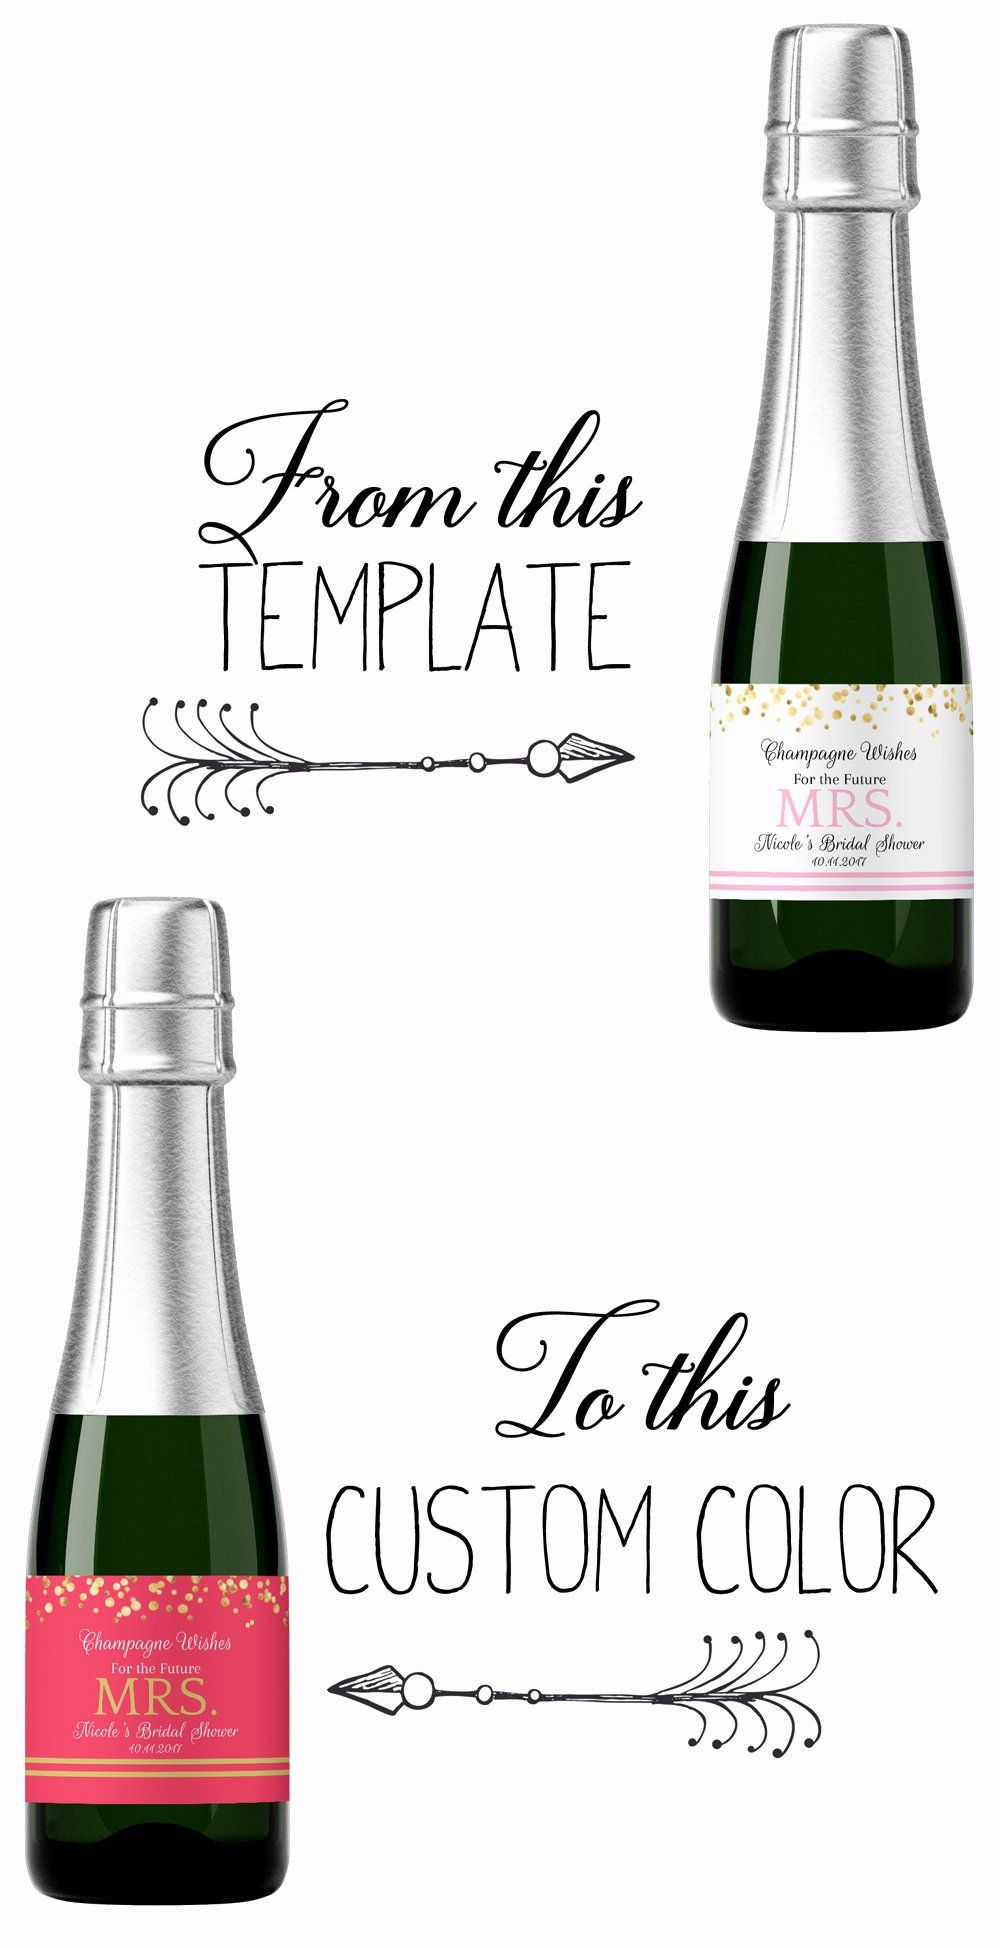 Liquor Bottle Labels Template Lovely How To Make A Custom Label From A Template Step By St Wine Label Template Wine Bottle Label Template Bottle Label Template Mini liquor bottle label template